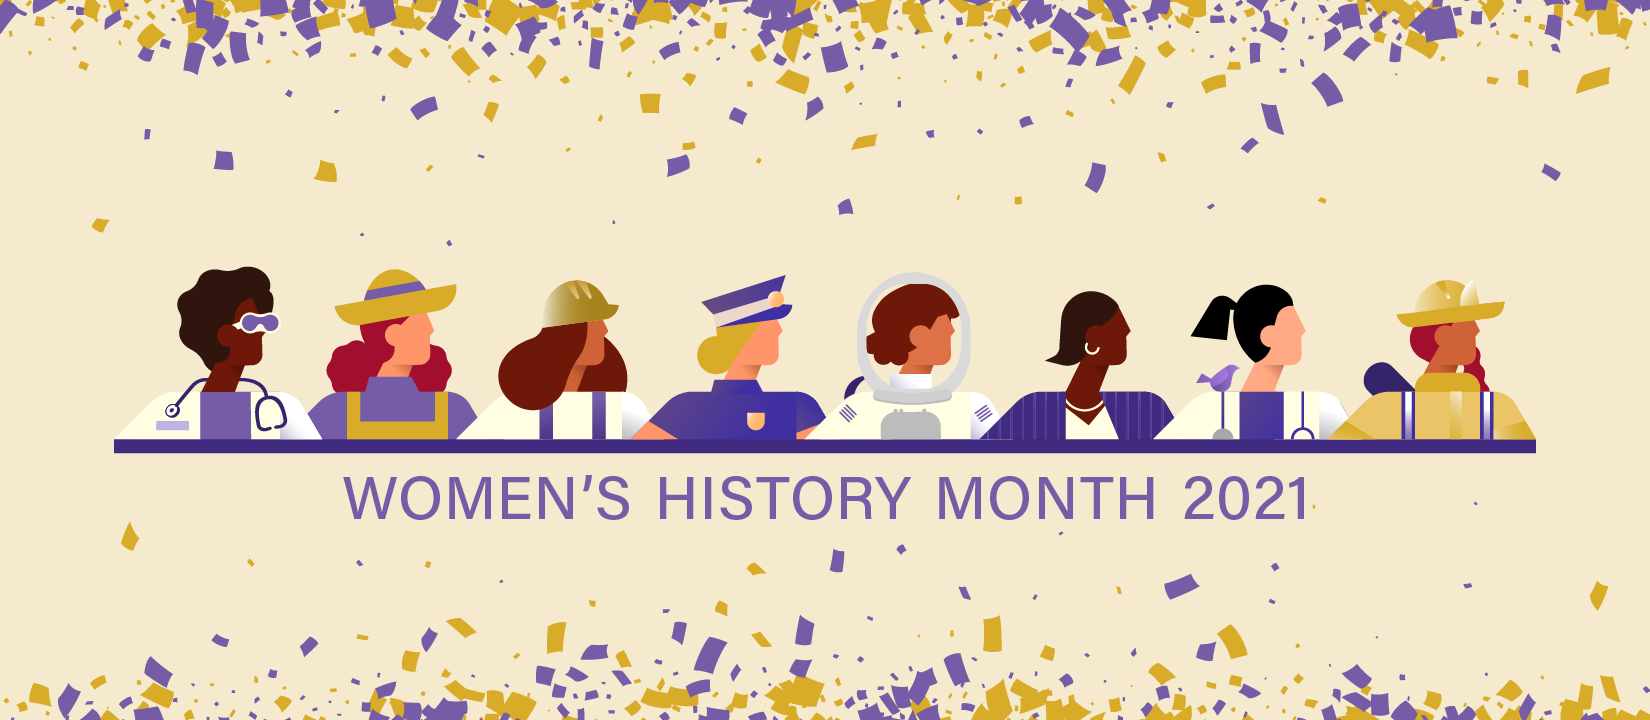 Image shows an illustration of a diverse group of women in different occupation, with the text 'Women's History Month 2021' underneath the illustration.